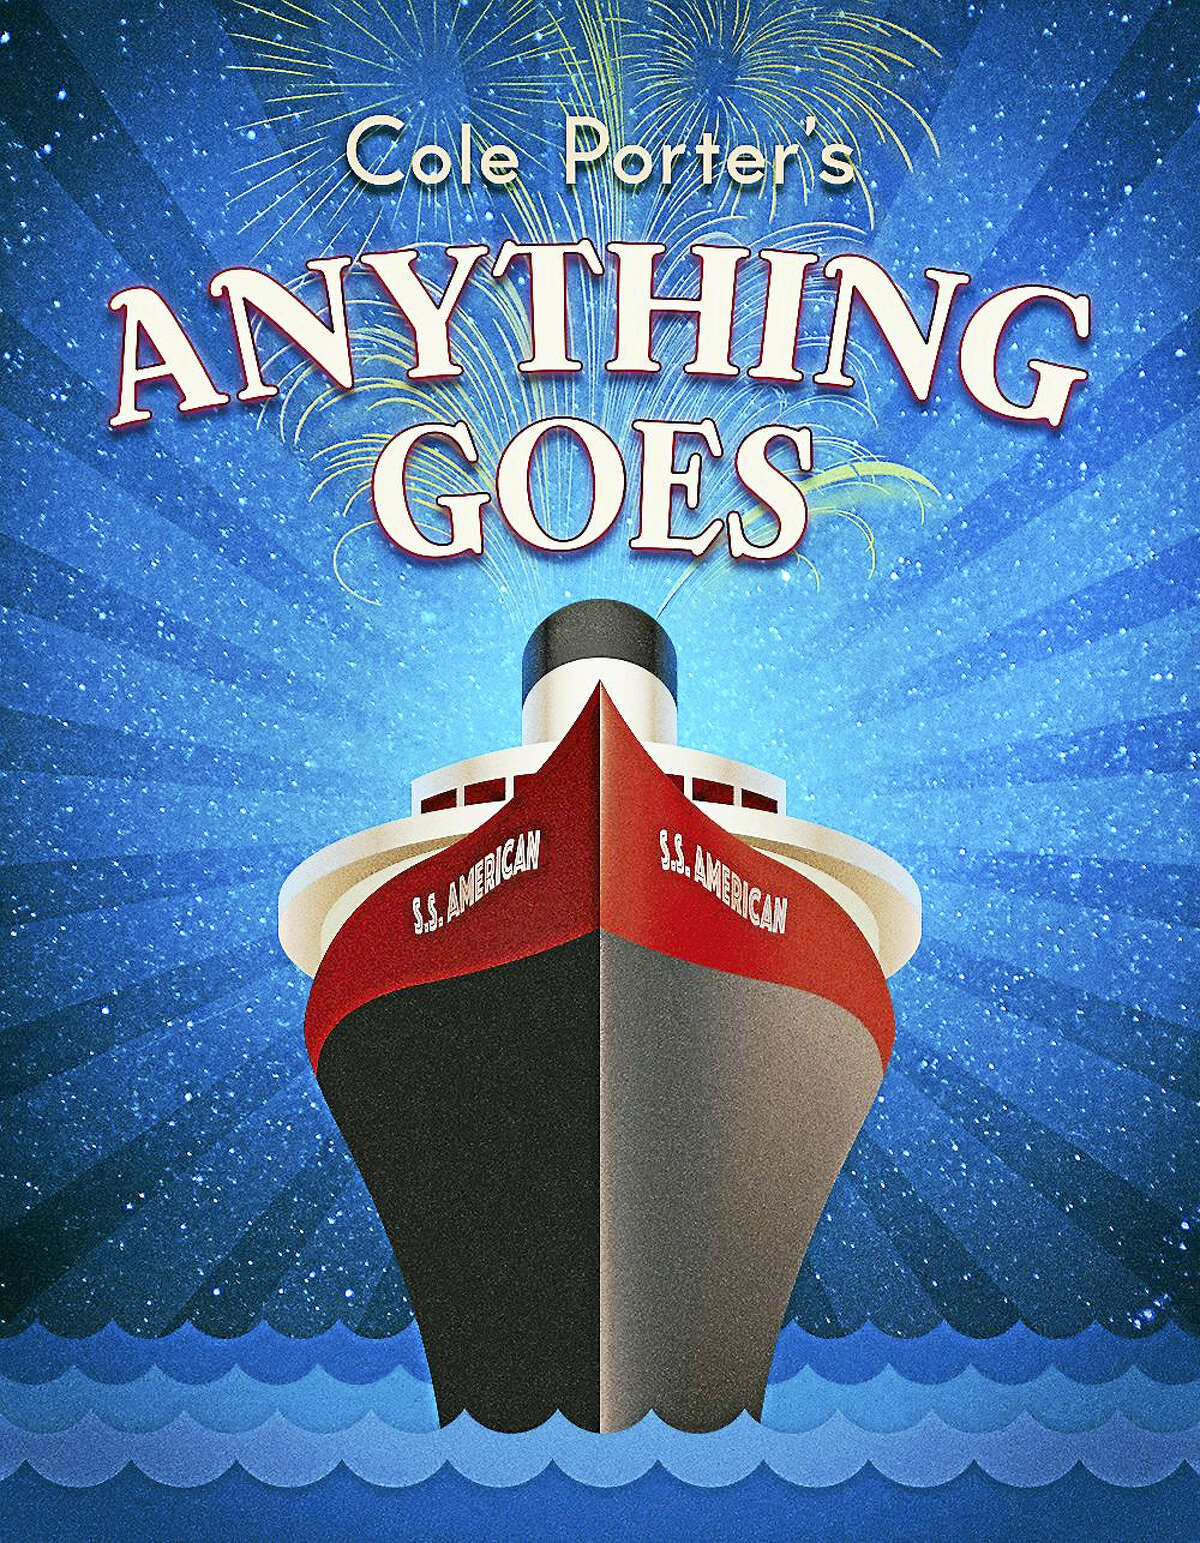 """Contributed photoGoodspeed Musicals presents """"Anything Goes"""" at the Goodspeed in East Haddam. The show opens in April."""